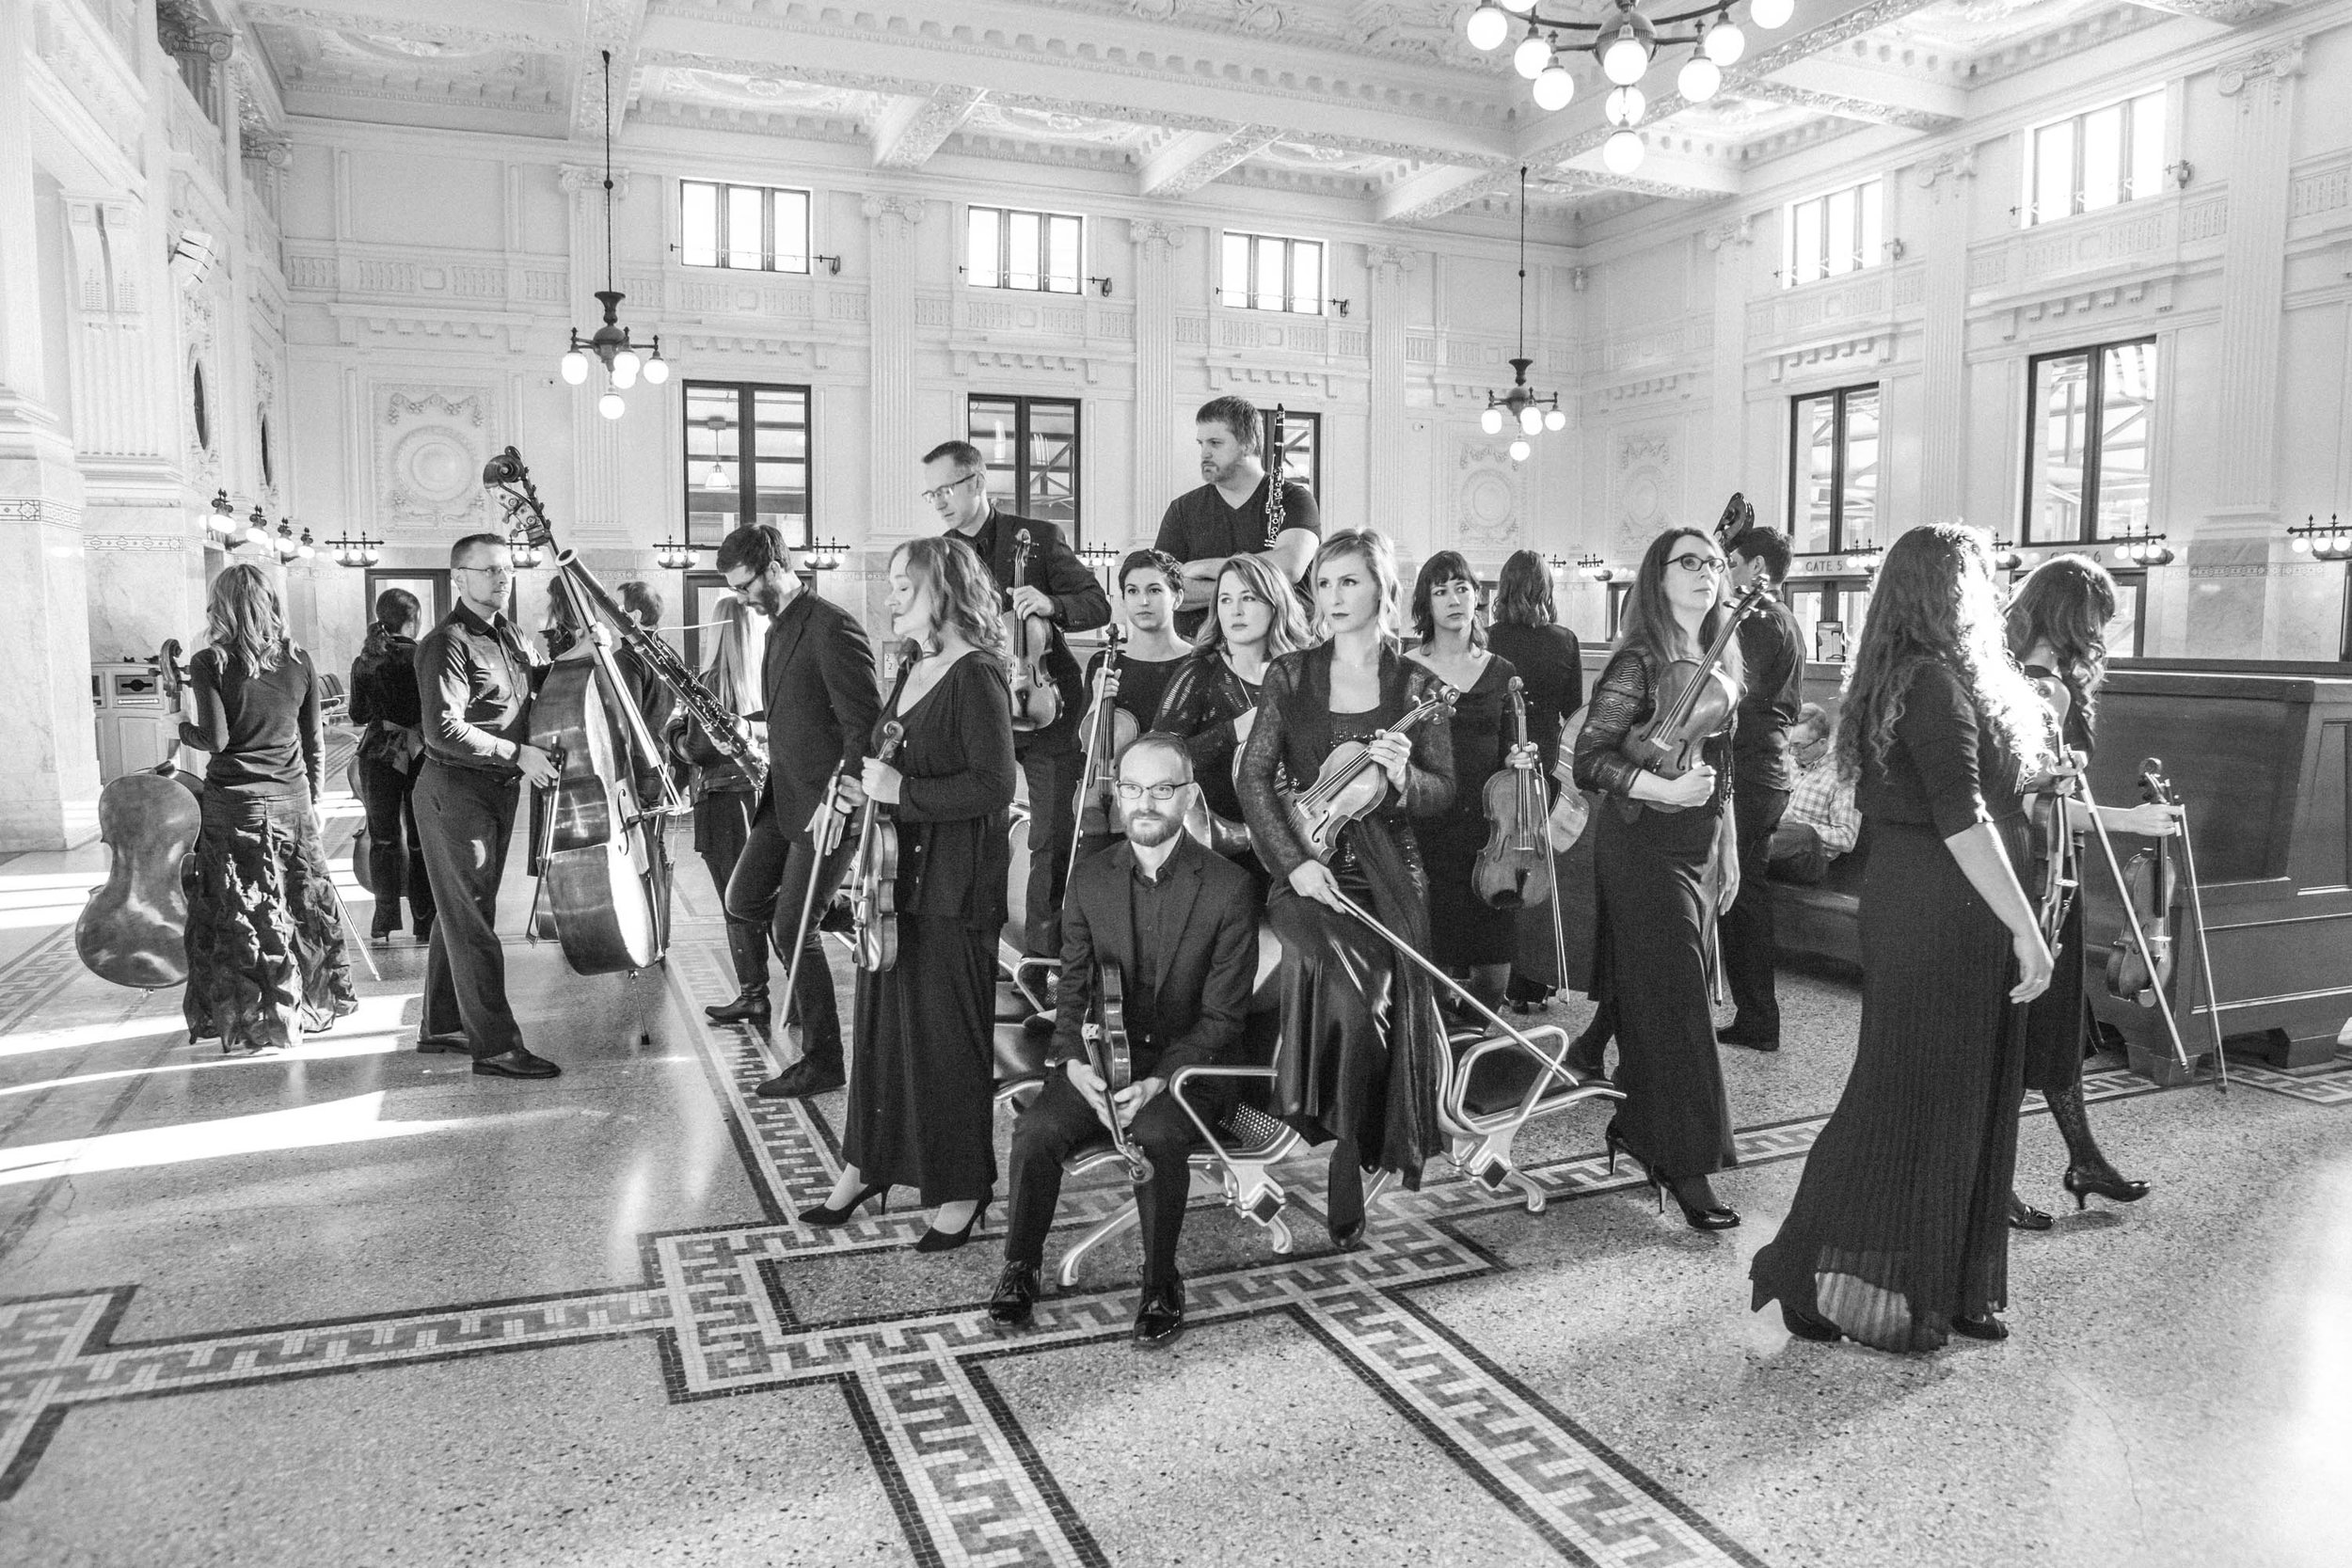 MEET OUR ORCHESTRA - Music is our passion, and we love to share it. The quality of your recordings starts with the best players! Our superior musicality translates the notes on a page, into a transcendent experience for your audience.